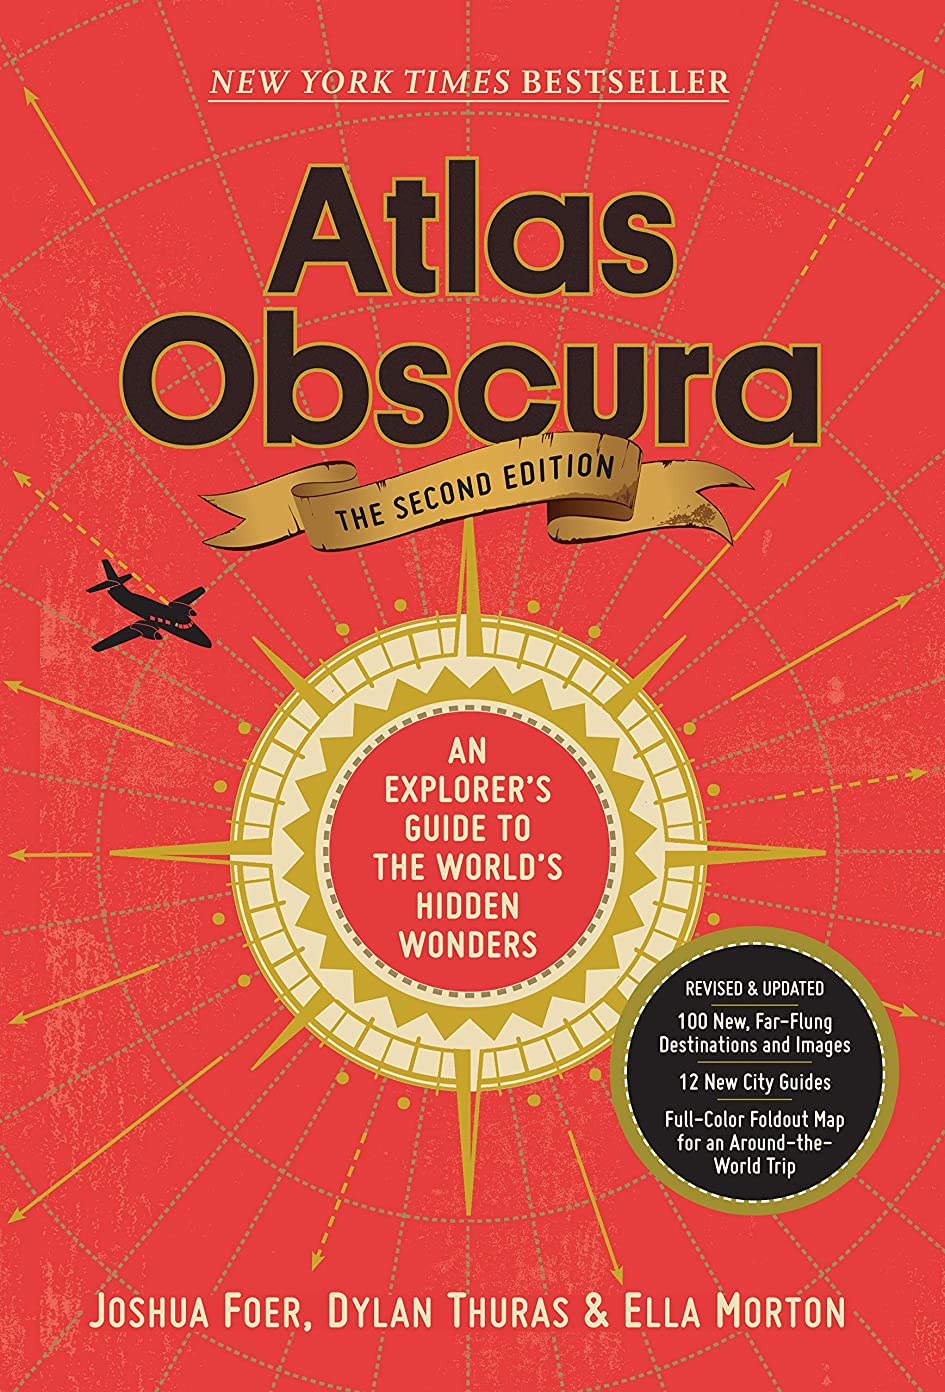 変動するスポークスマン相談Atlas Obscura, 2nd Edition: An Explorer's Guide to the World's Hidden Wonders (English Edition)